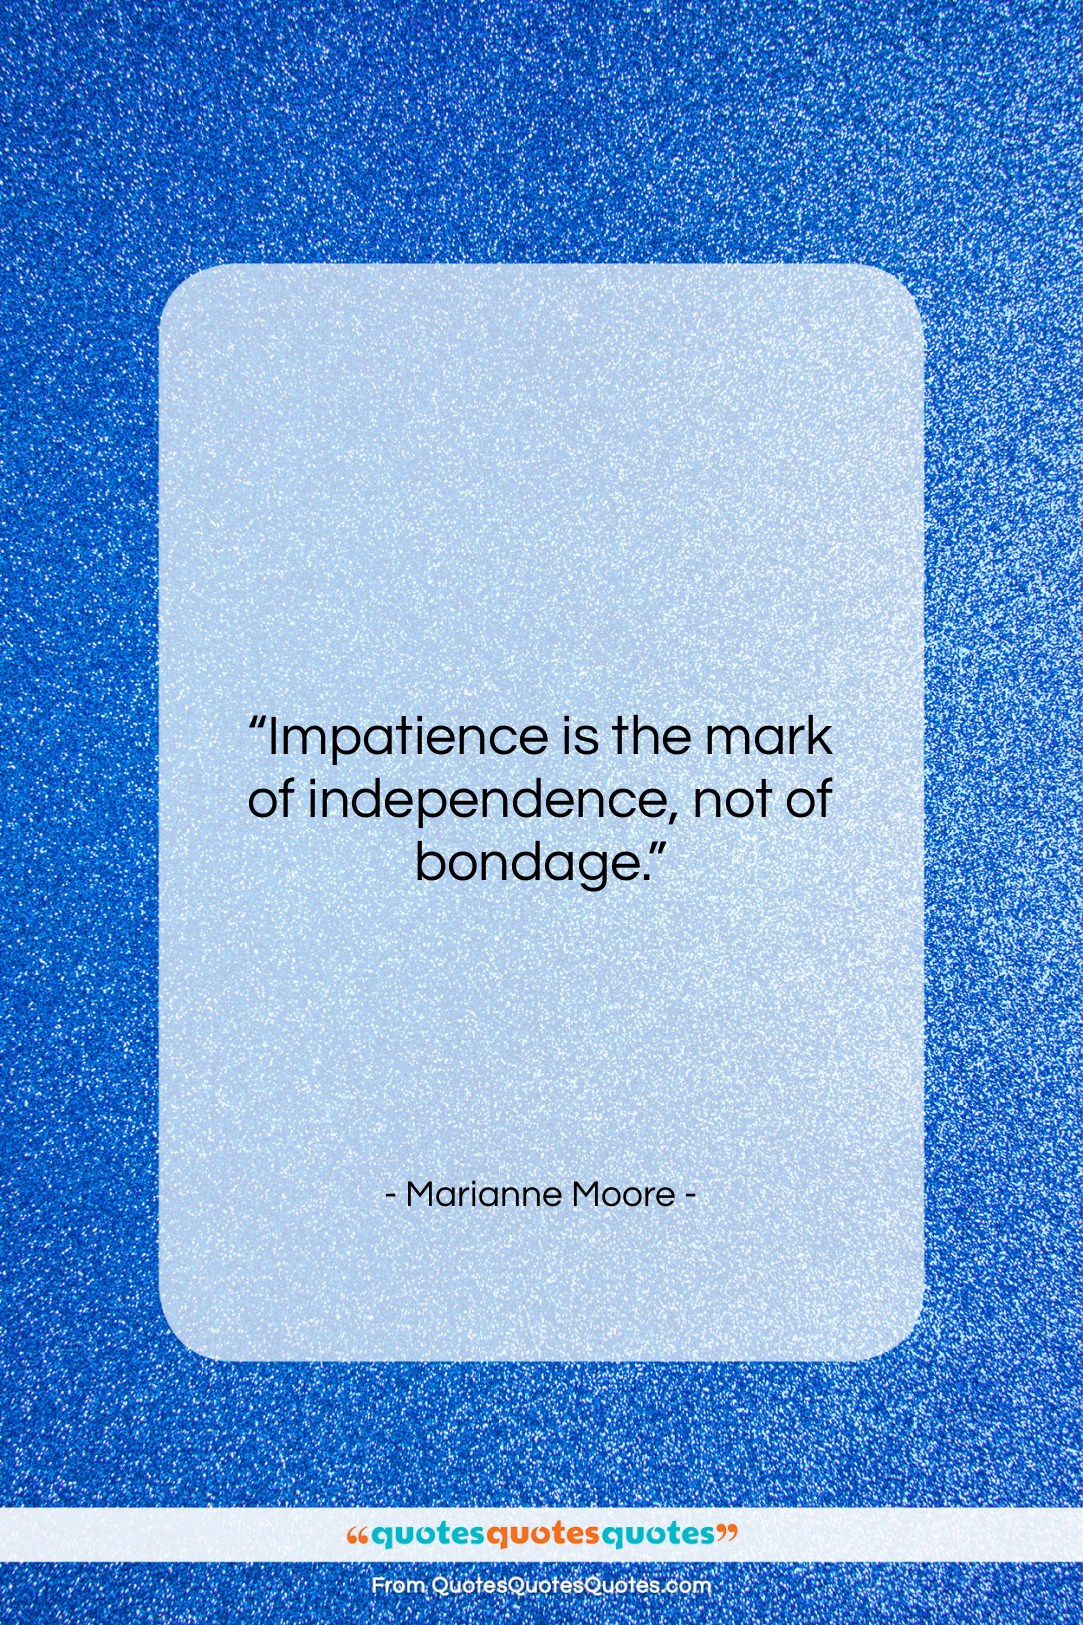 """Marianne Moore quote: """"Impatience is the mark of independence, not…""""- at QuotesQuotesQuotes.com"""